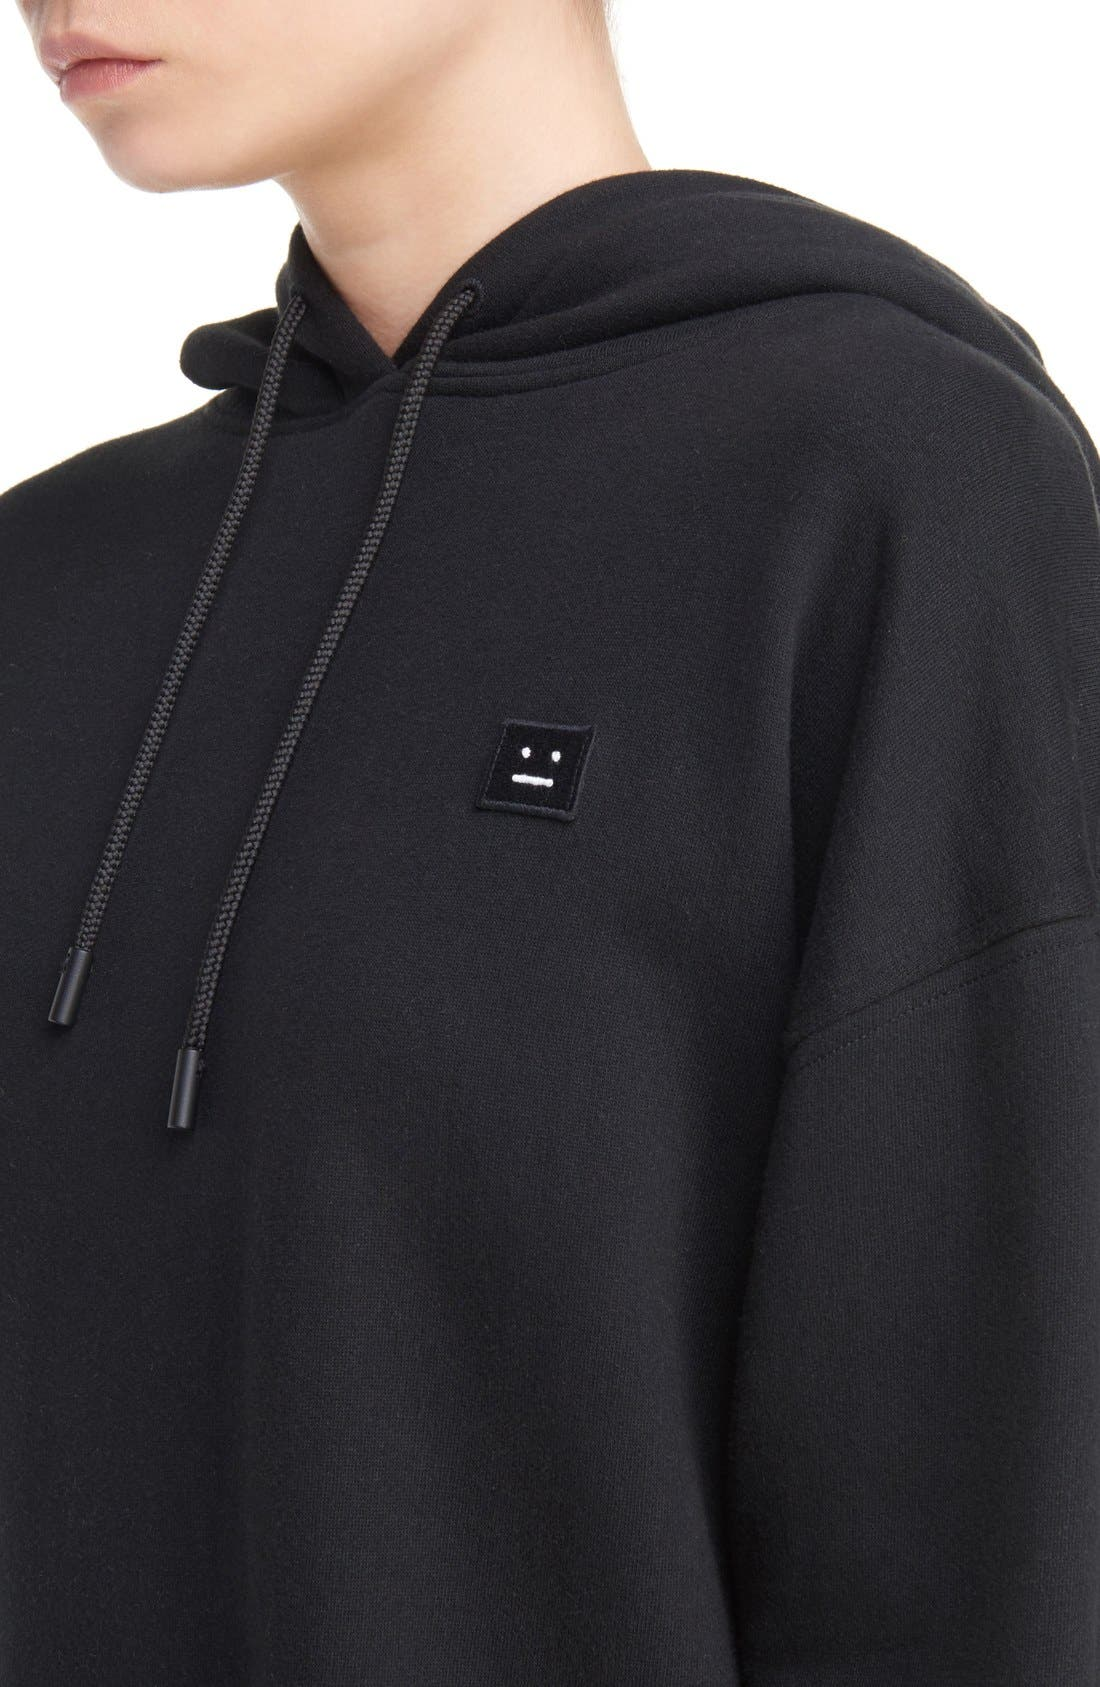 Yala Patch Hoodie,                             Alternate thumbnail 6, color,                             002